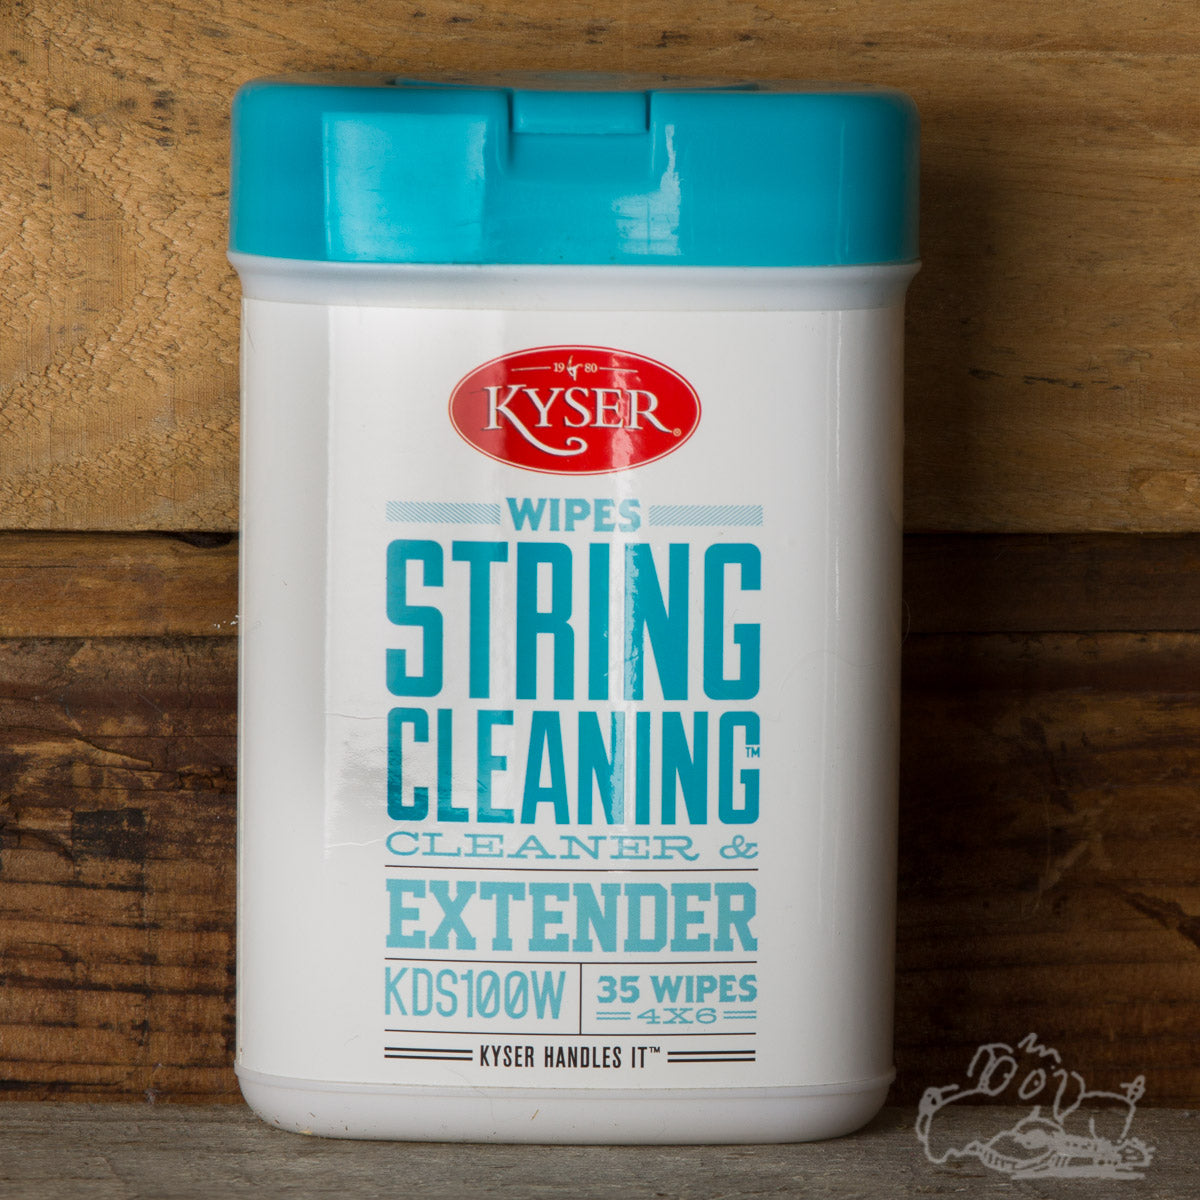 Kyser Wipes String Cleaner & Extender - 4x6 Wipes (35 Wipes)